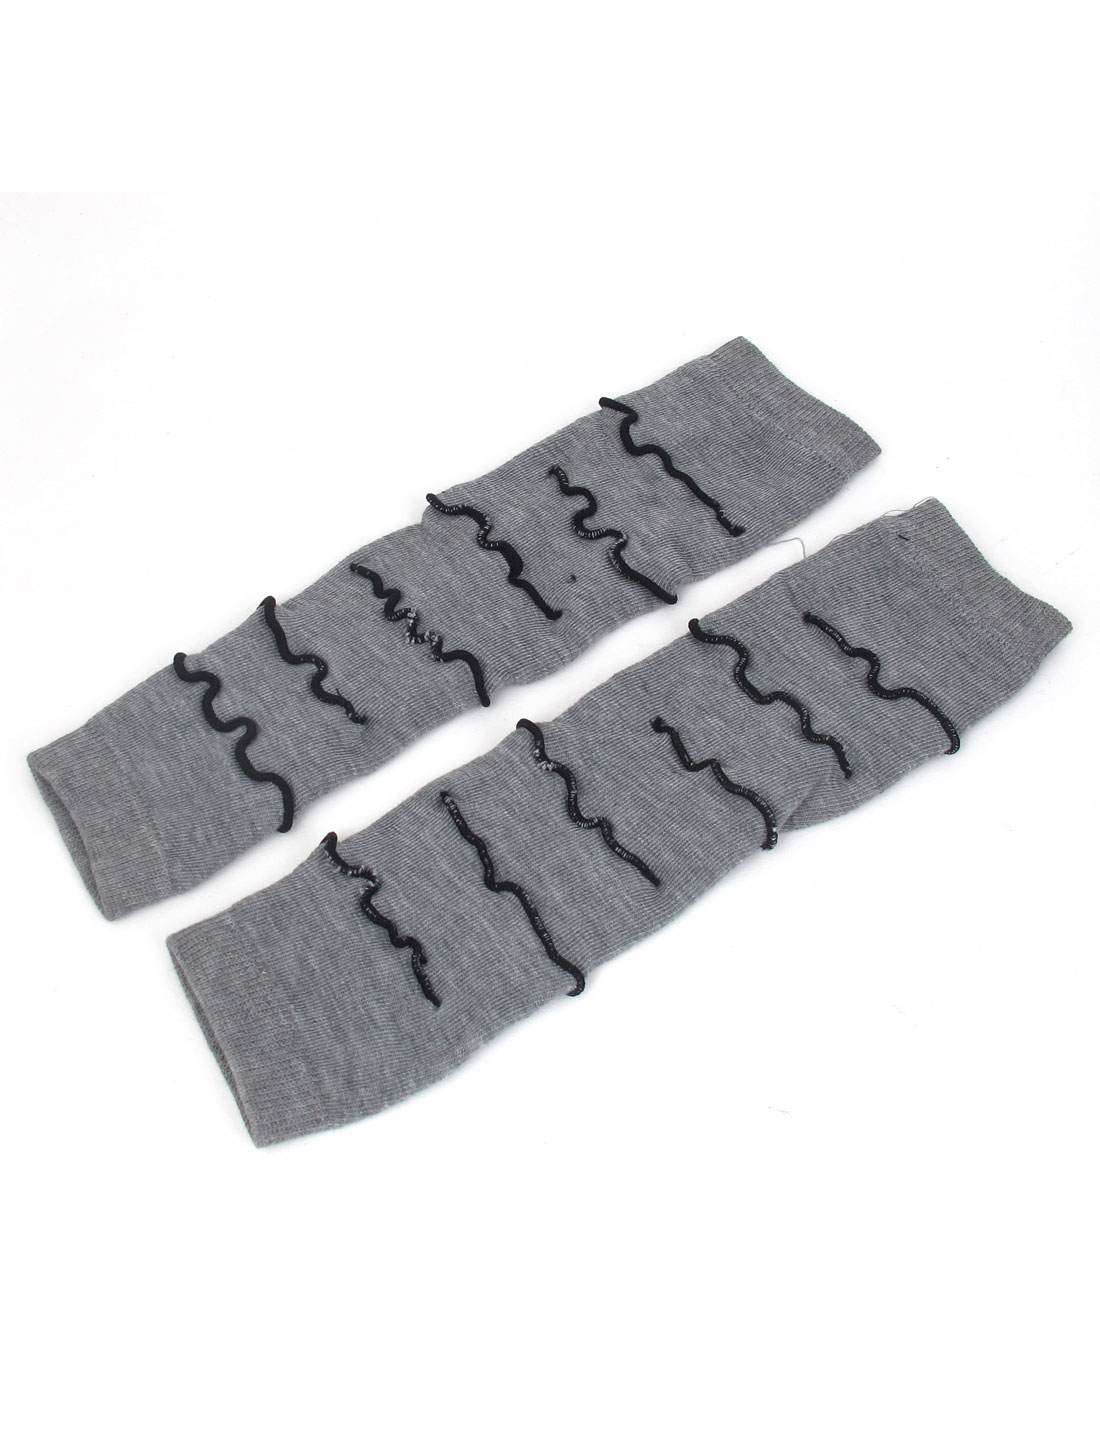 Pair Gray Winter Fall Fingerless Arm Warmers Elbow Long Gloves for Women